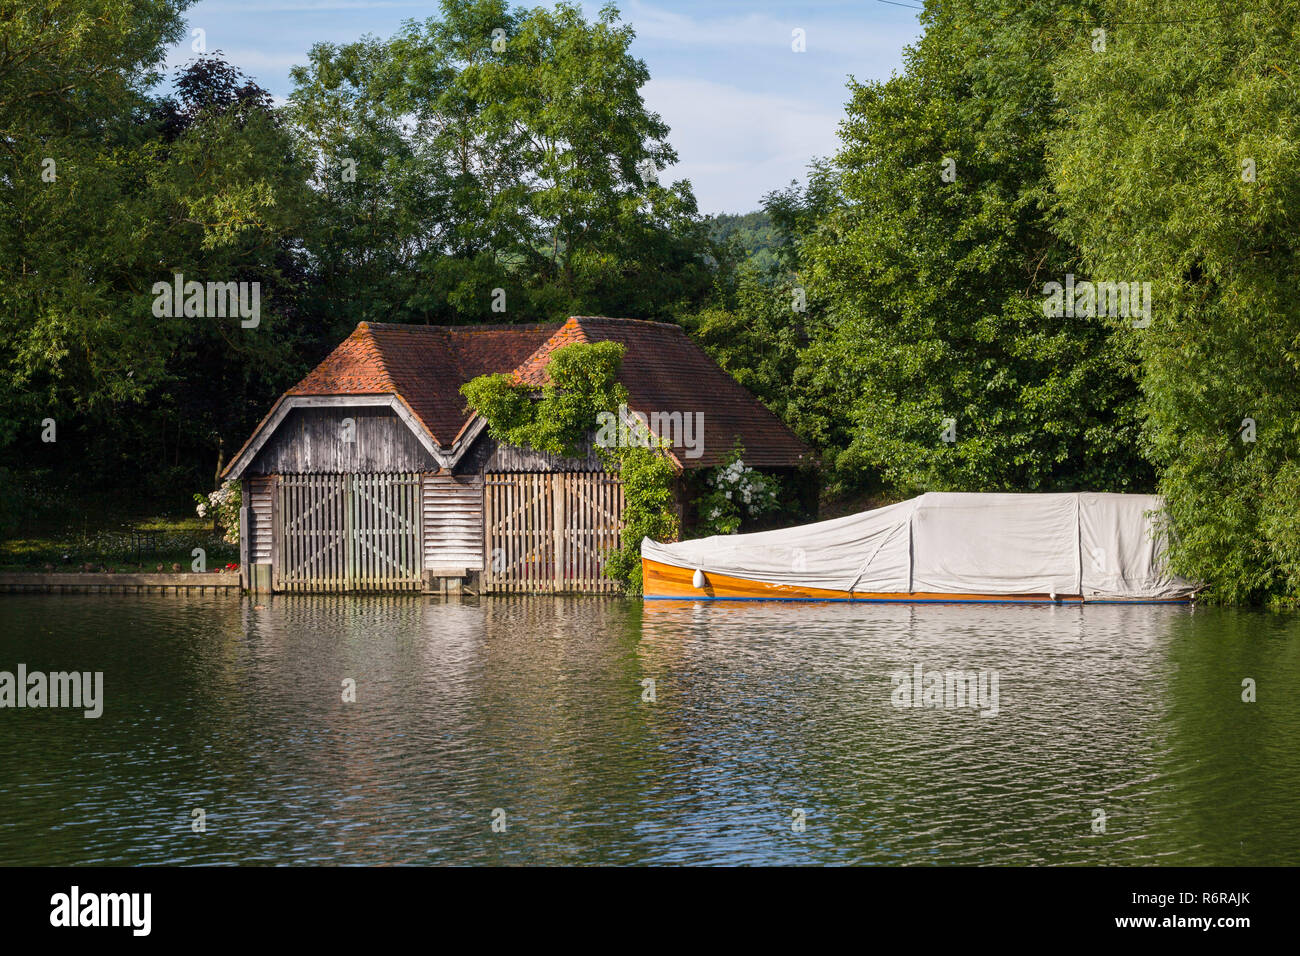 An old boathouse and classic mahogany launch under a canvas cover on the Thames at Mill End, Buckinghamshire - Stock Image